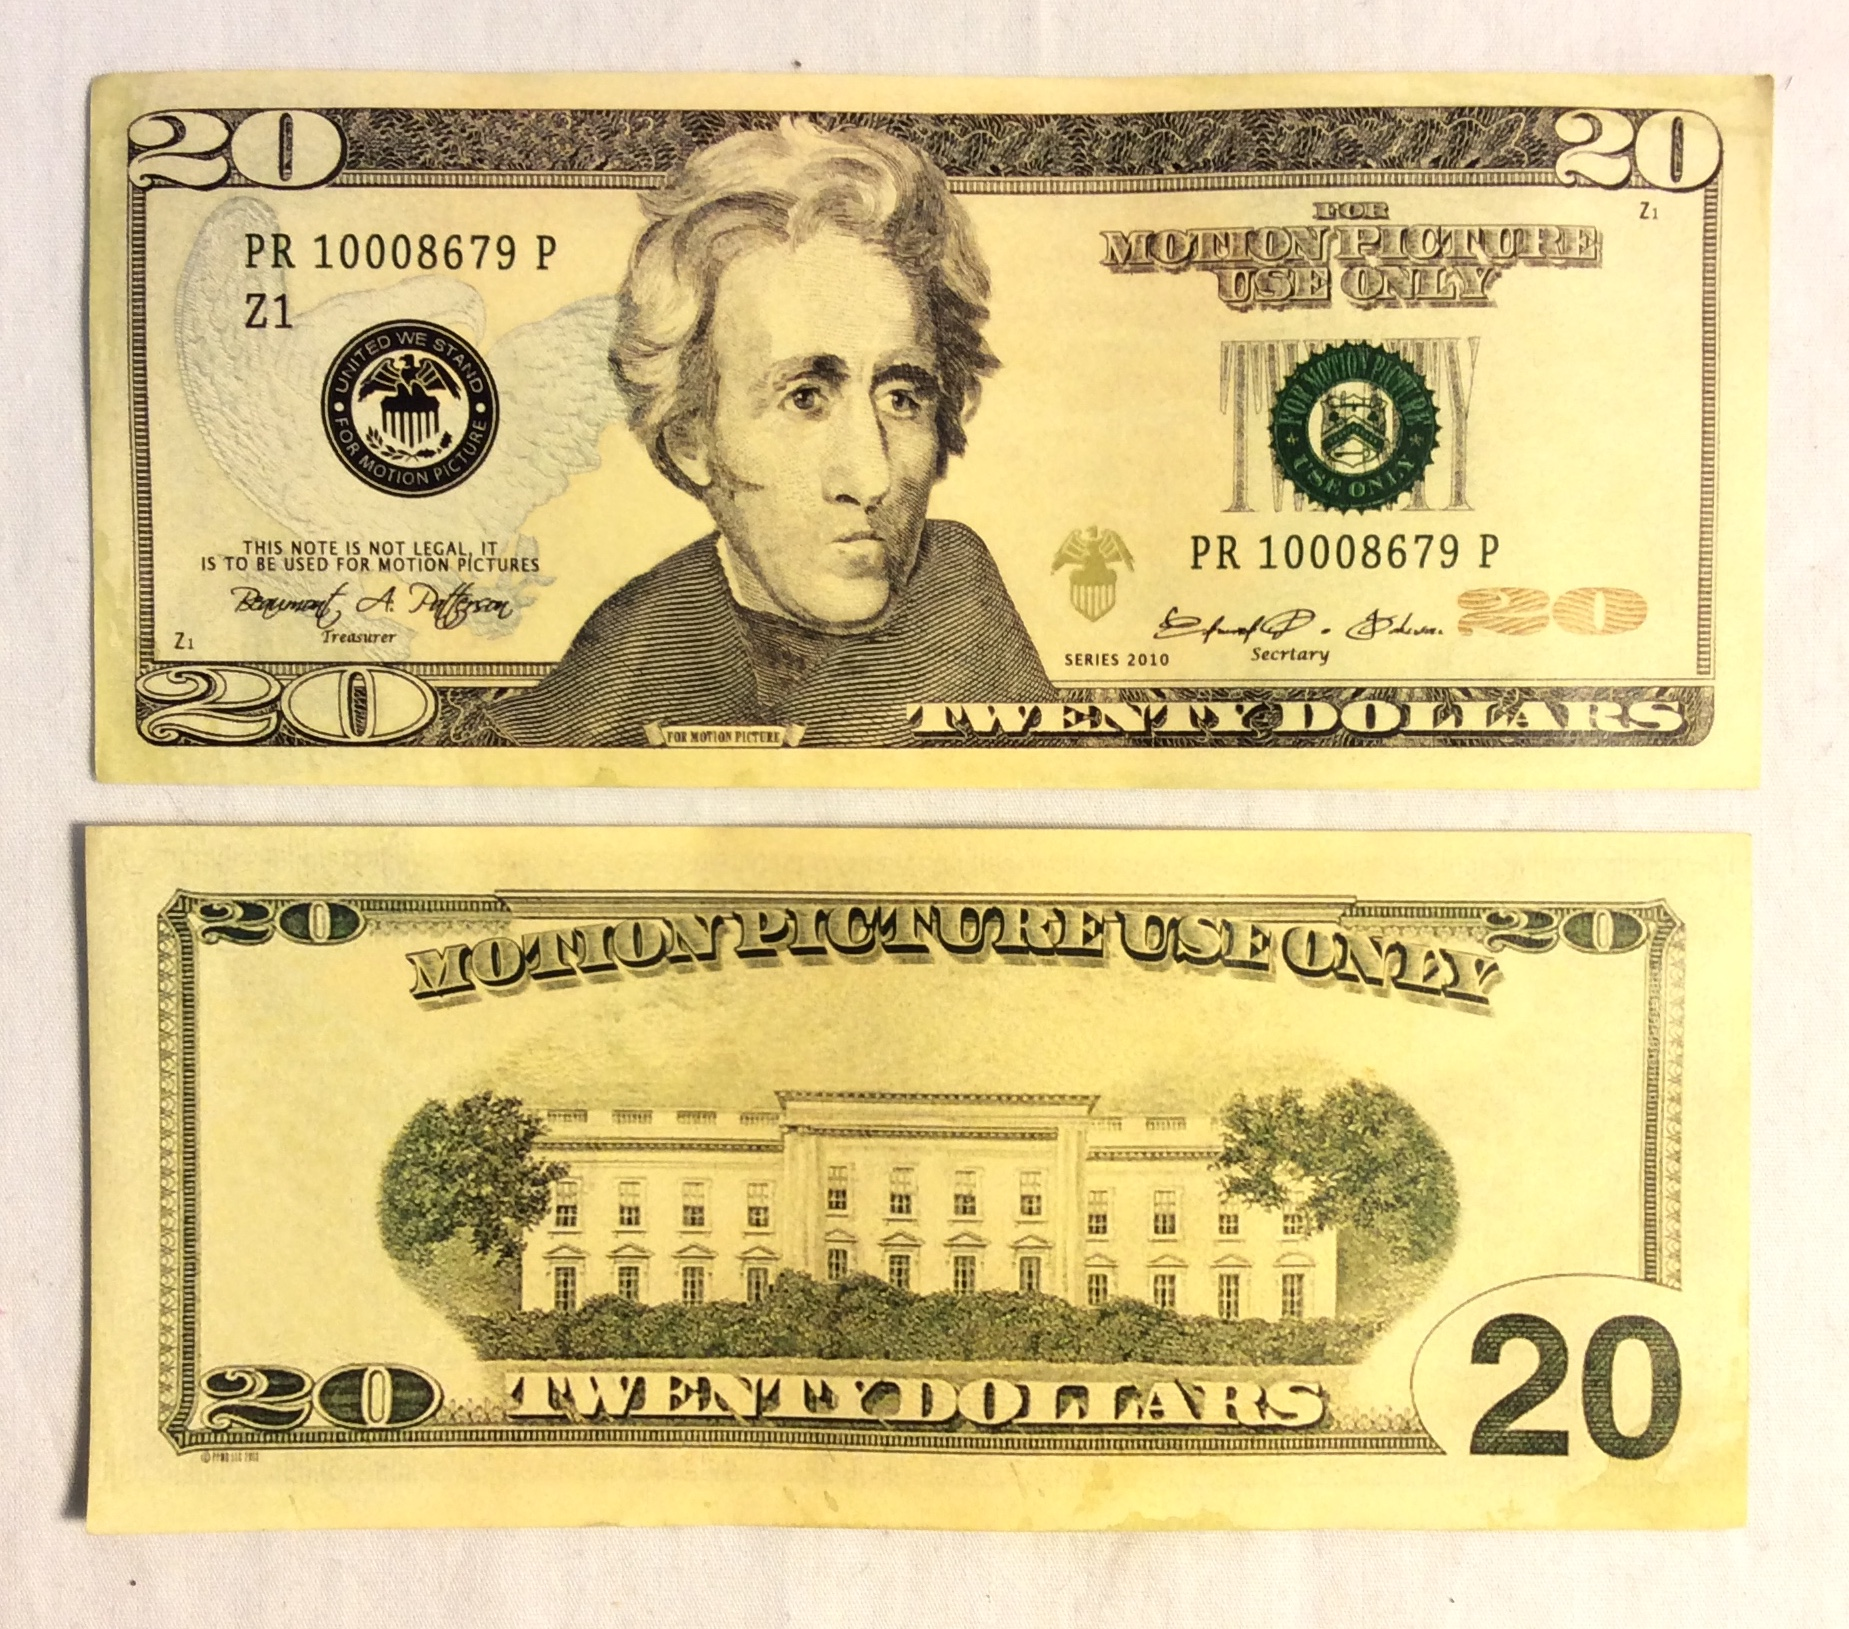 US $20 Bill, double-sided